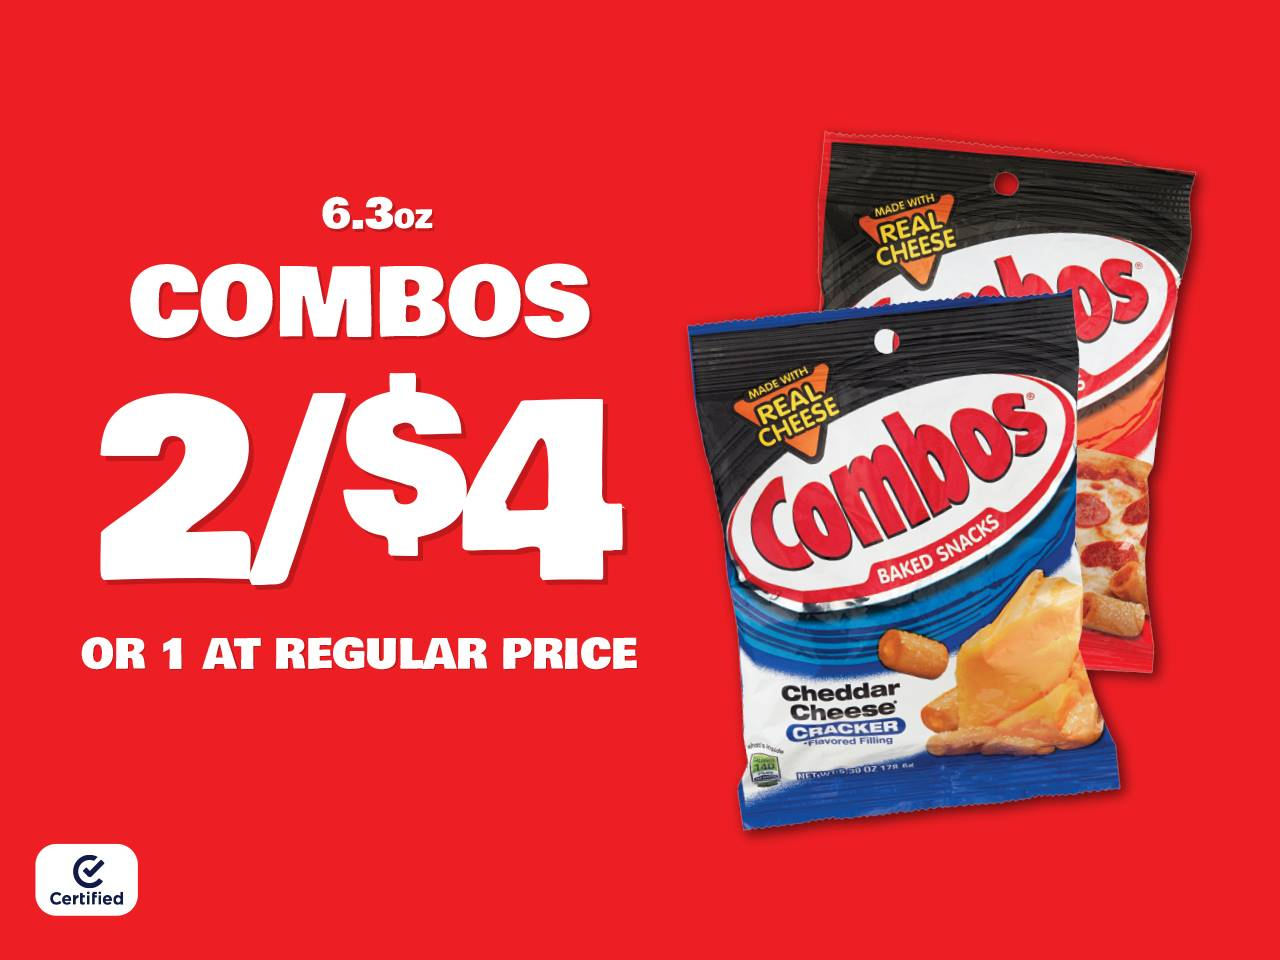 6.3oz Combos 2 for $4 or 1 at Reg Price